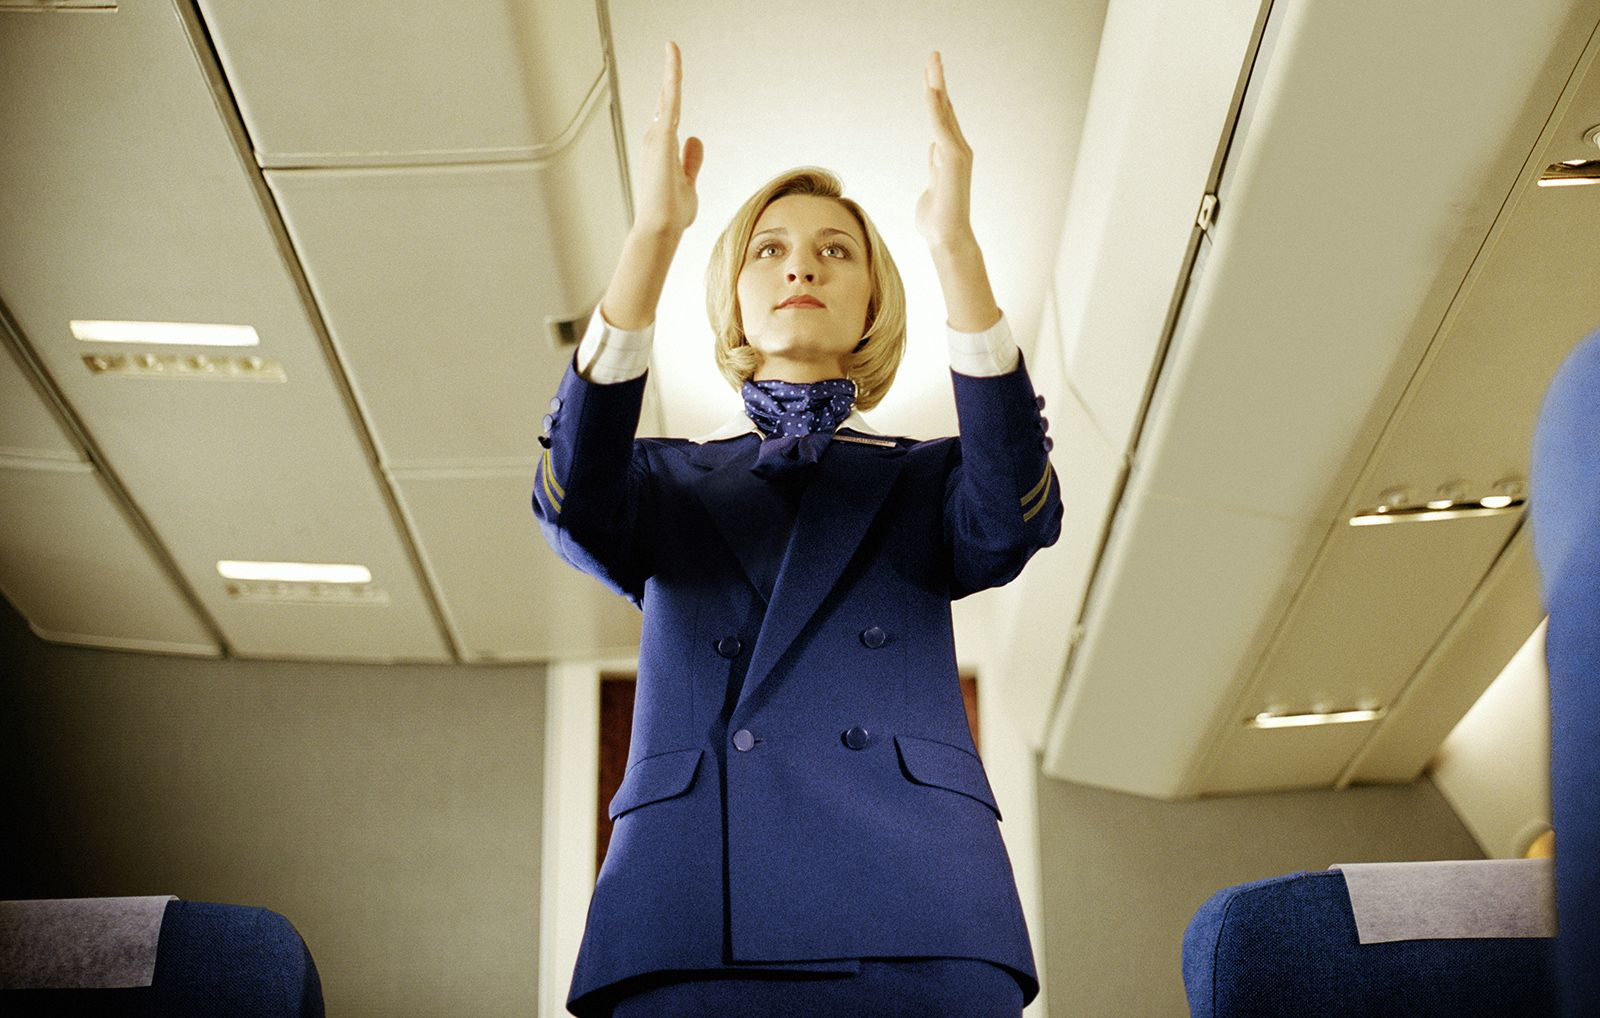 The Craziest, Most NSFW Things Flight Attendants Have Seen On A Plane